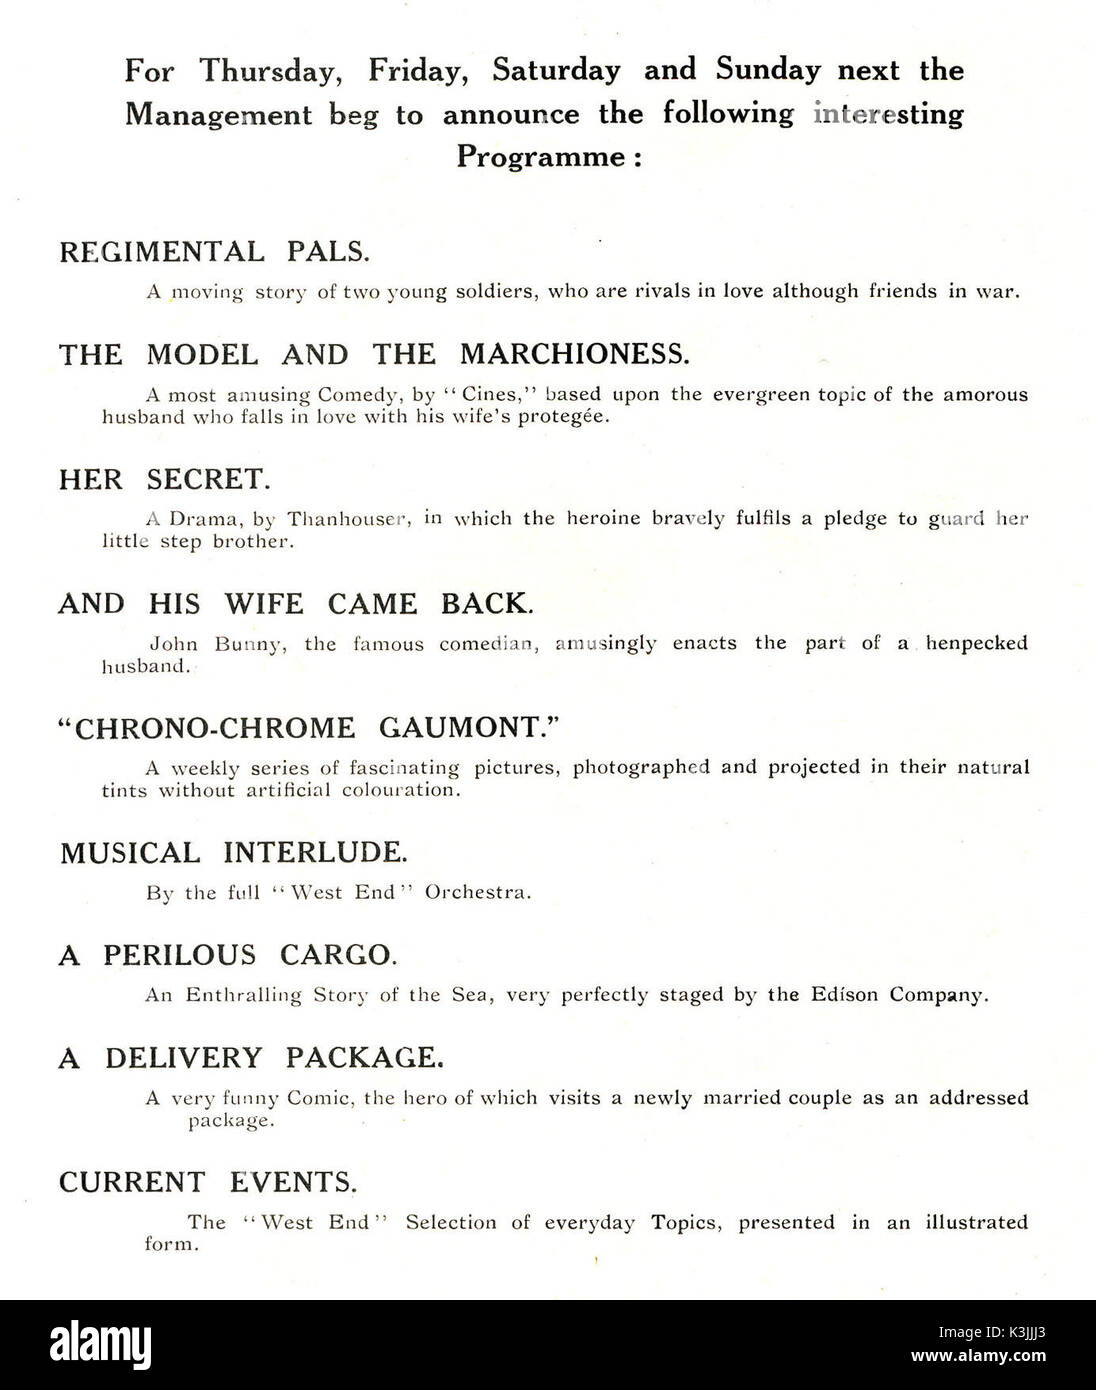 TYPICAL PROGRAMME FOR THE WEST END CINEMA, COVENTRY STREET, LONDON 8th,9th,10th, 11th MAY 1913 It is fascinating to see the quantity and range of films shown in one programme at this time TYPICAL PROGRAMME FOR THE WEST END CINEMA, COVENTRY STREET, LONDON - Stock Image